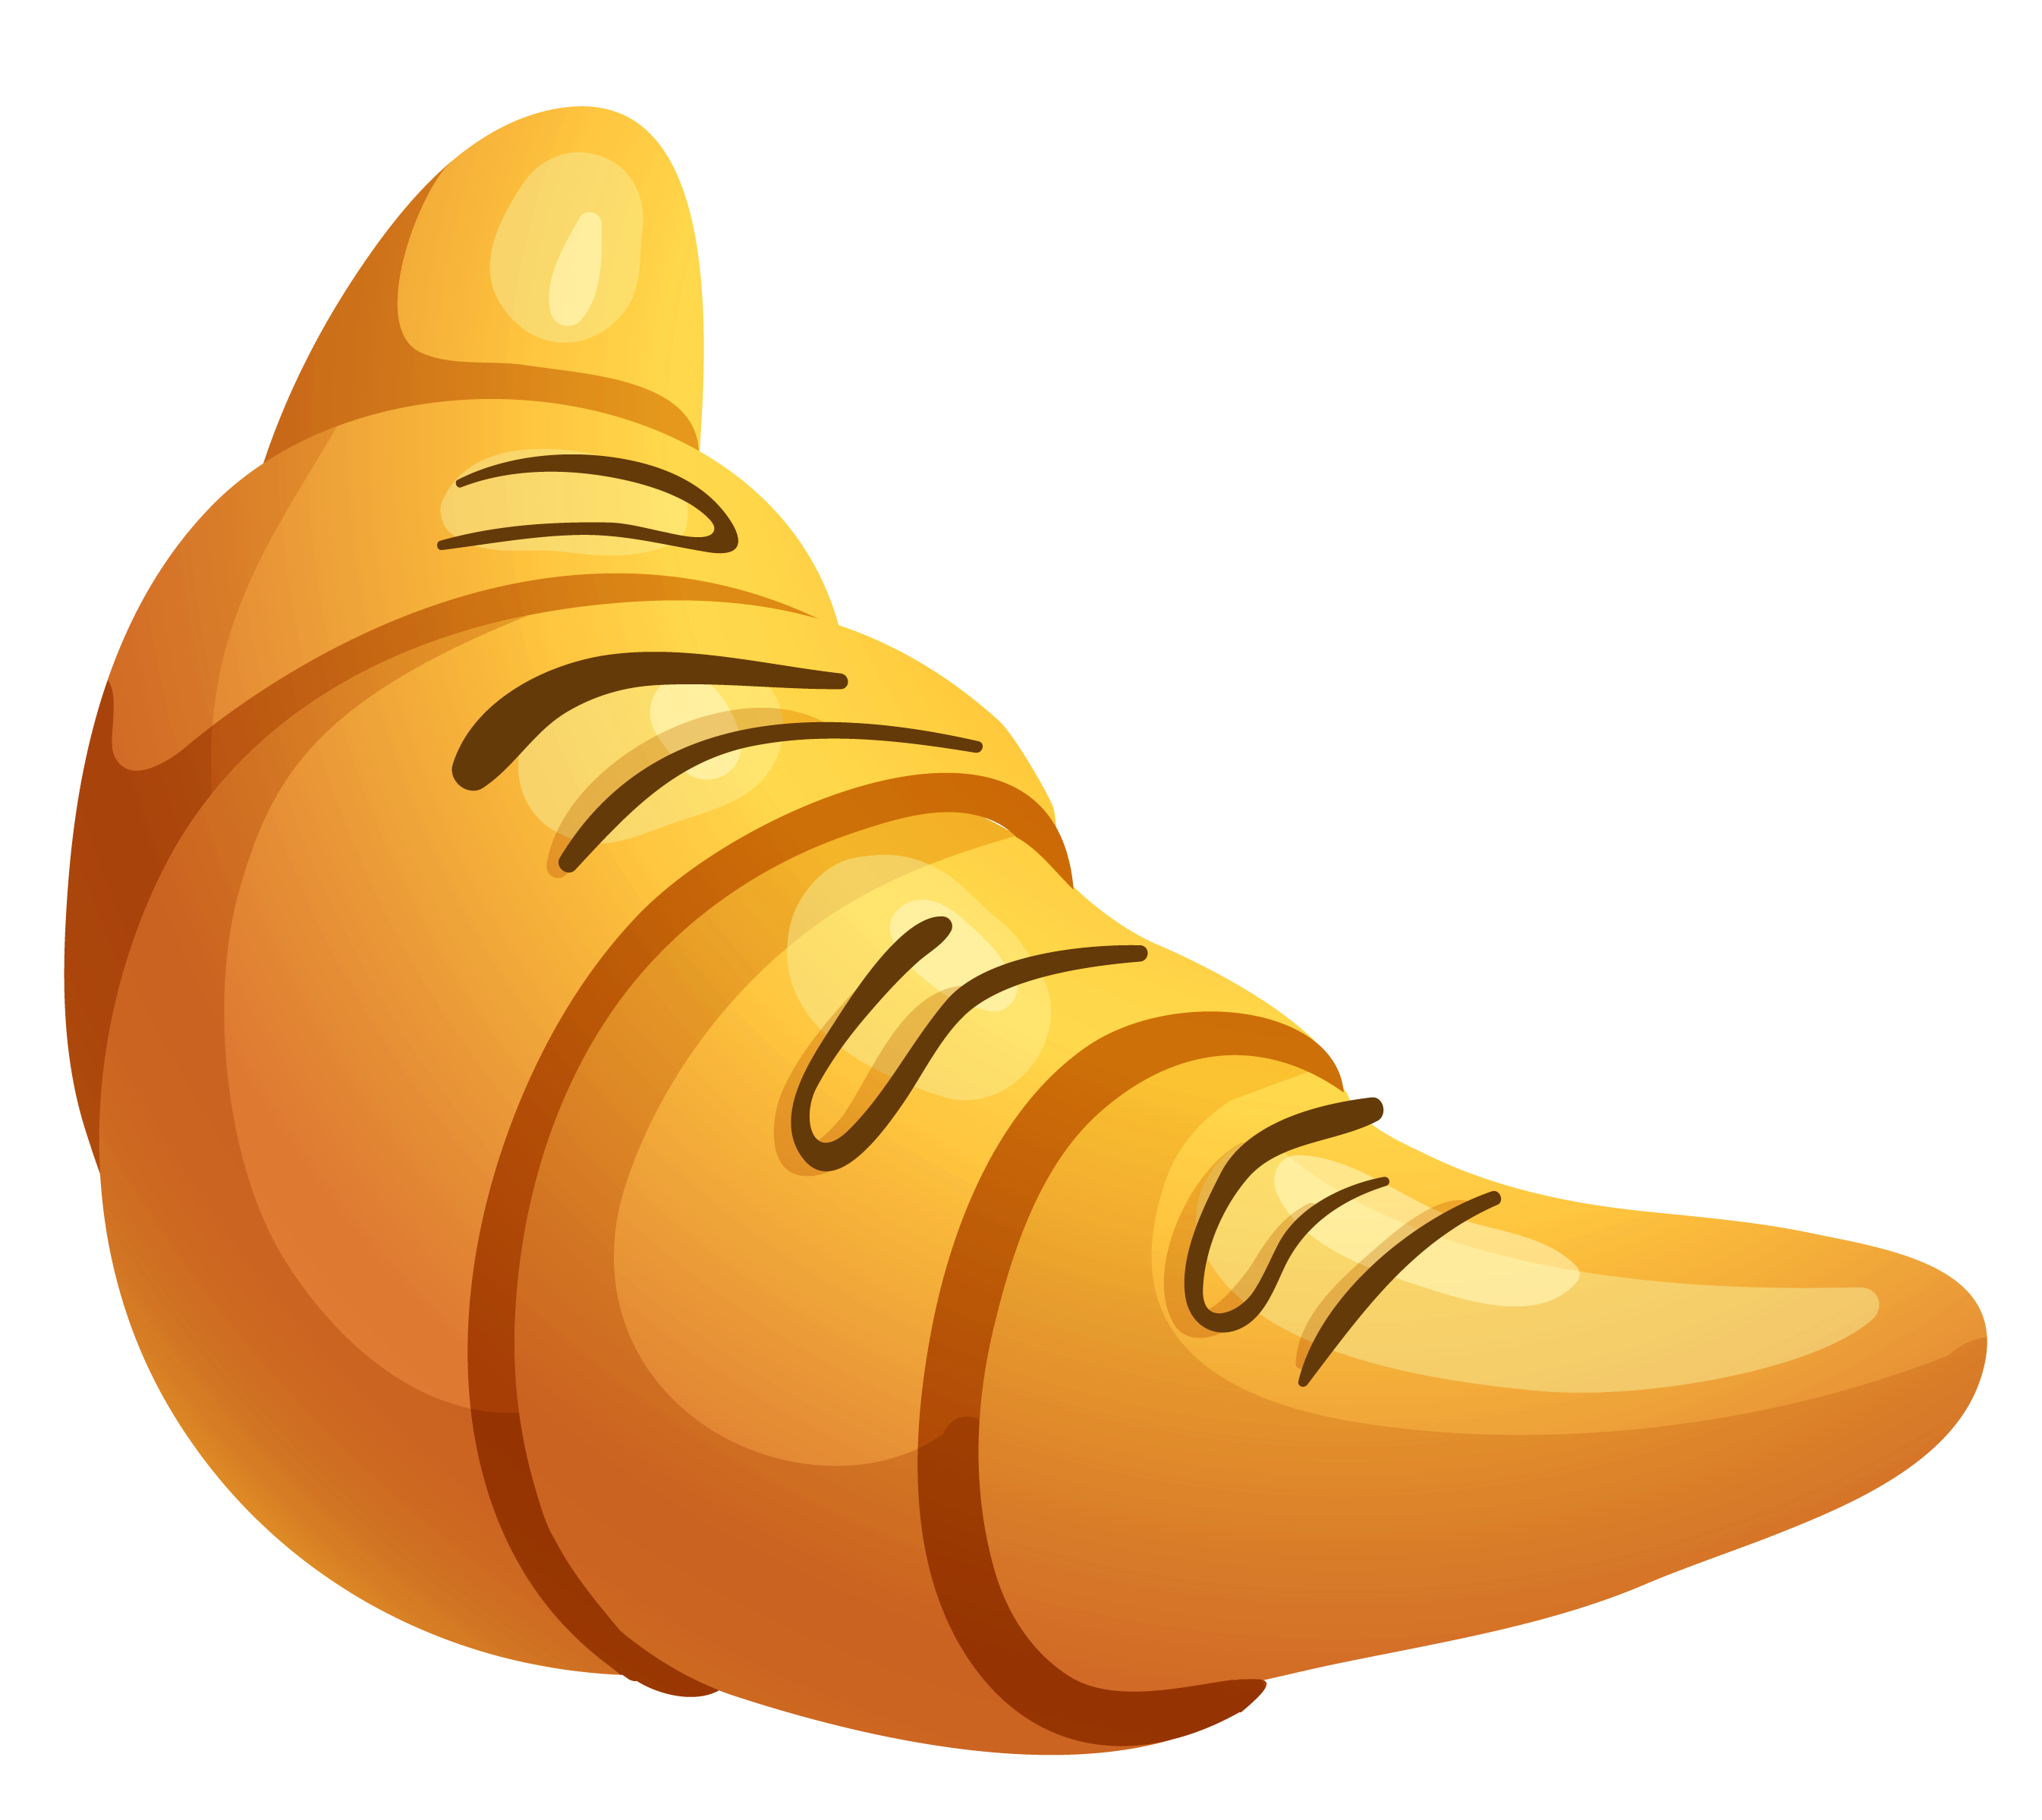 Conflict clipart corporation. Croissant with chocolate png